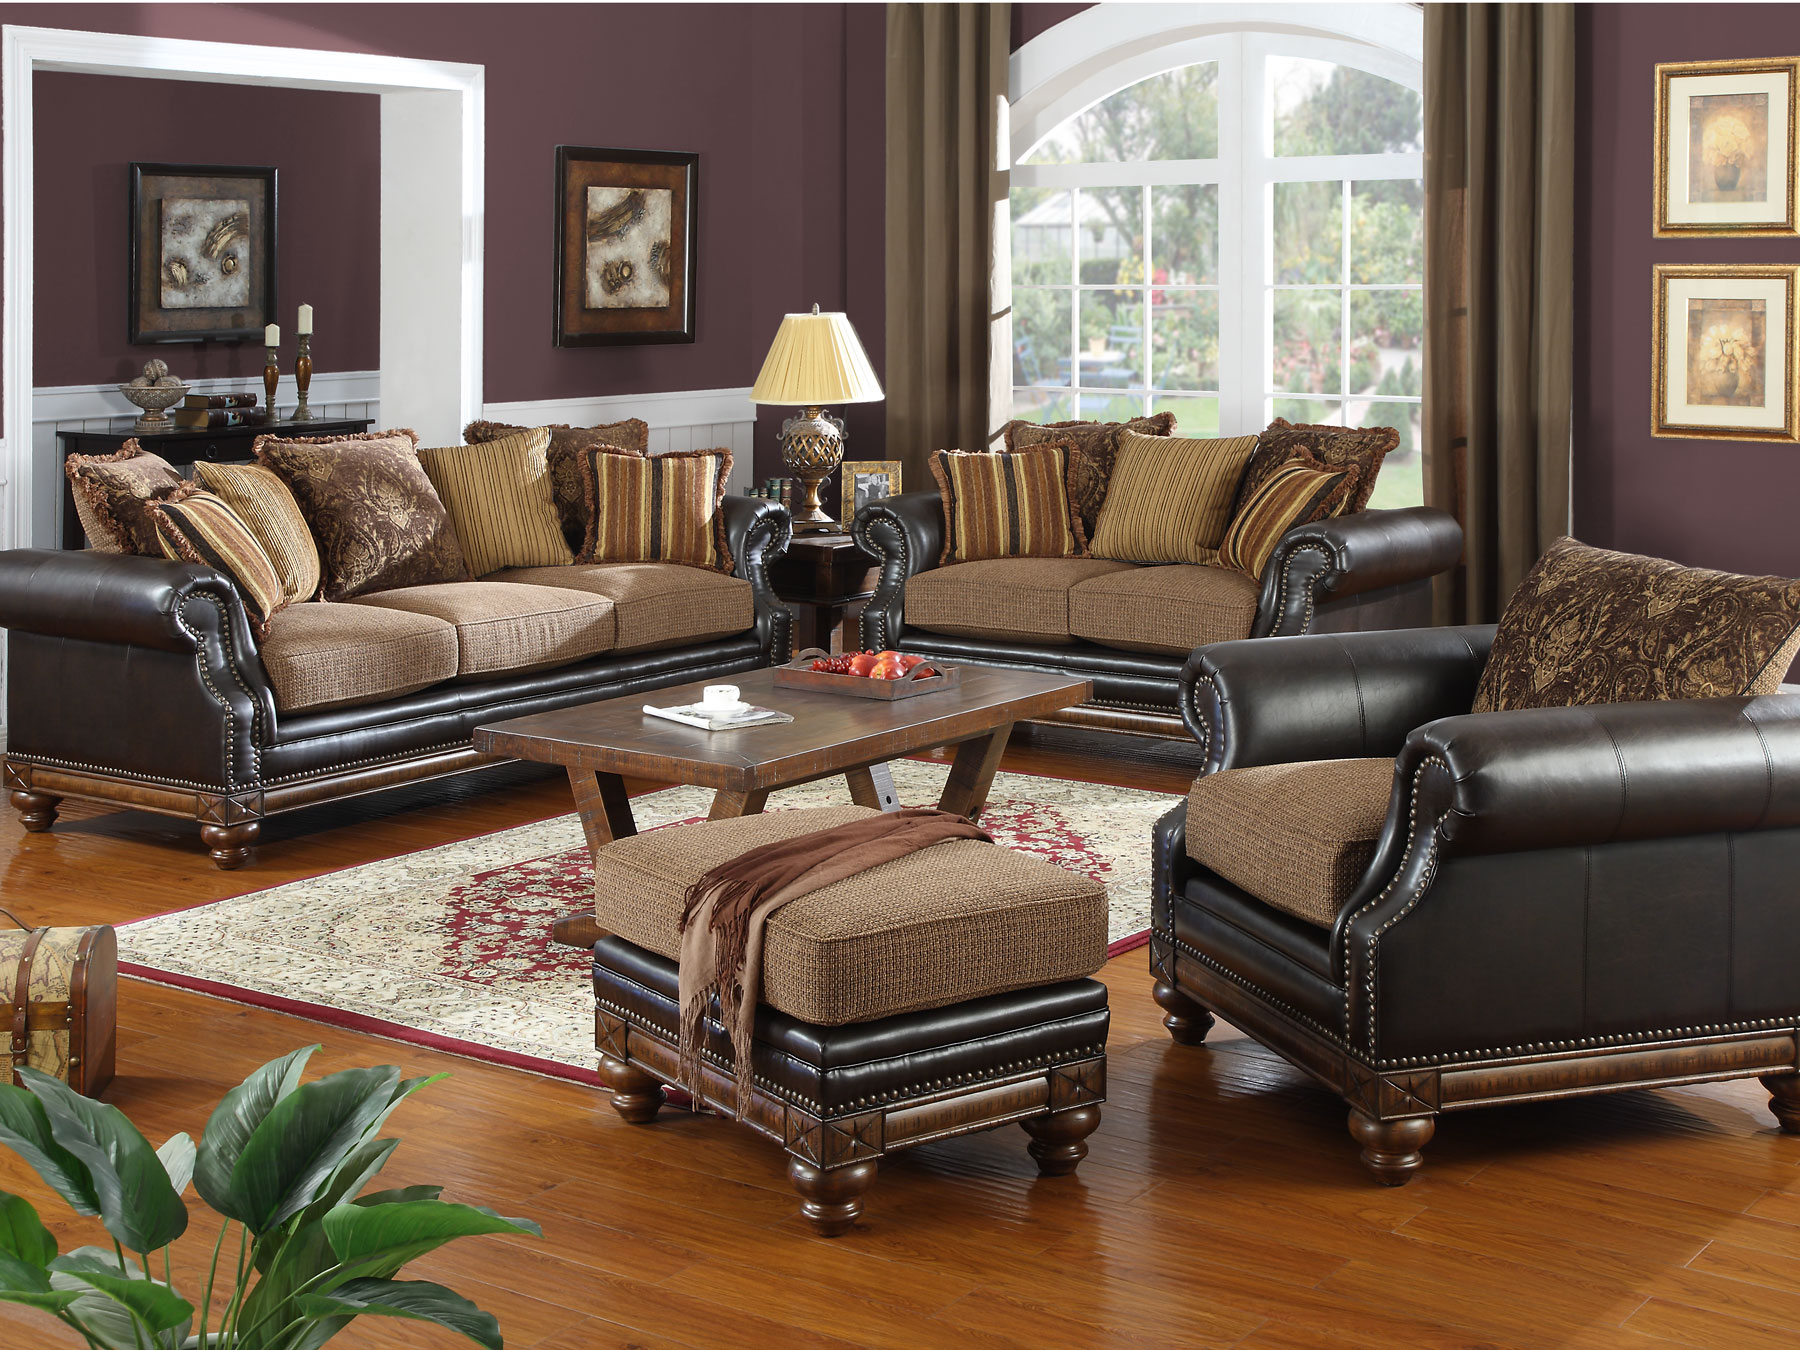 A Complete Guide To Buy Furniture Living Room Sets Elites Home Decor pertaining to Best Place To Buy Living Room Sets